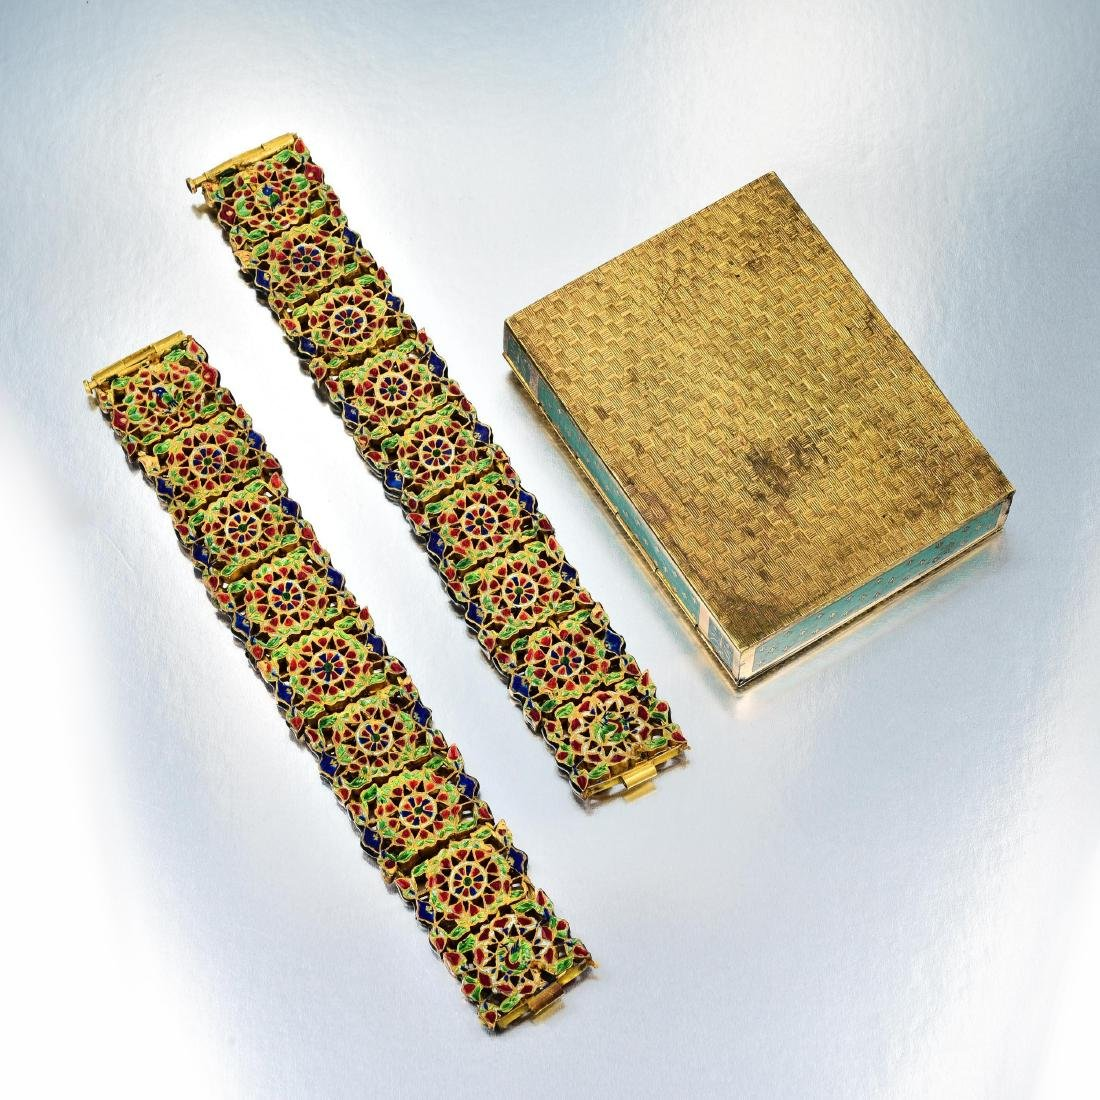 A Group of Indian Jewelry and Enamel Box - 7